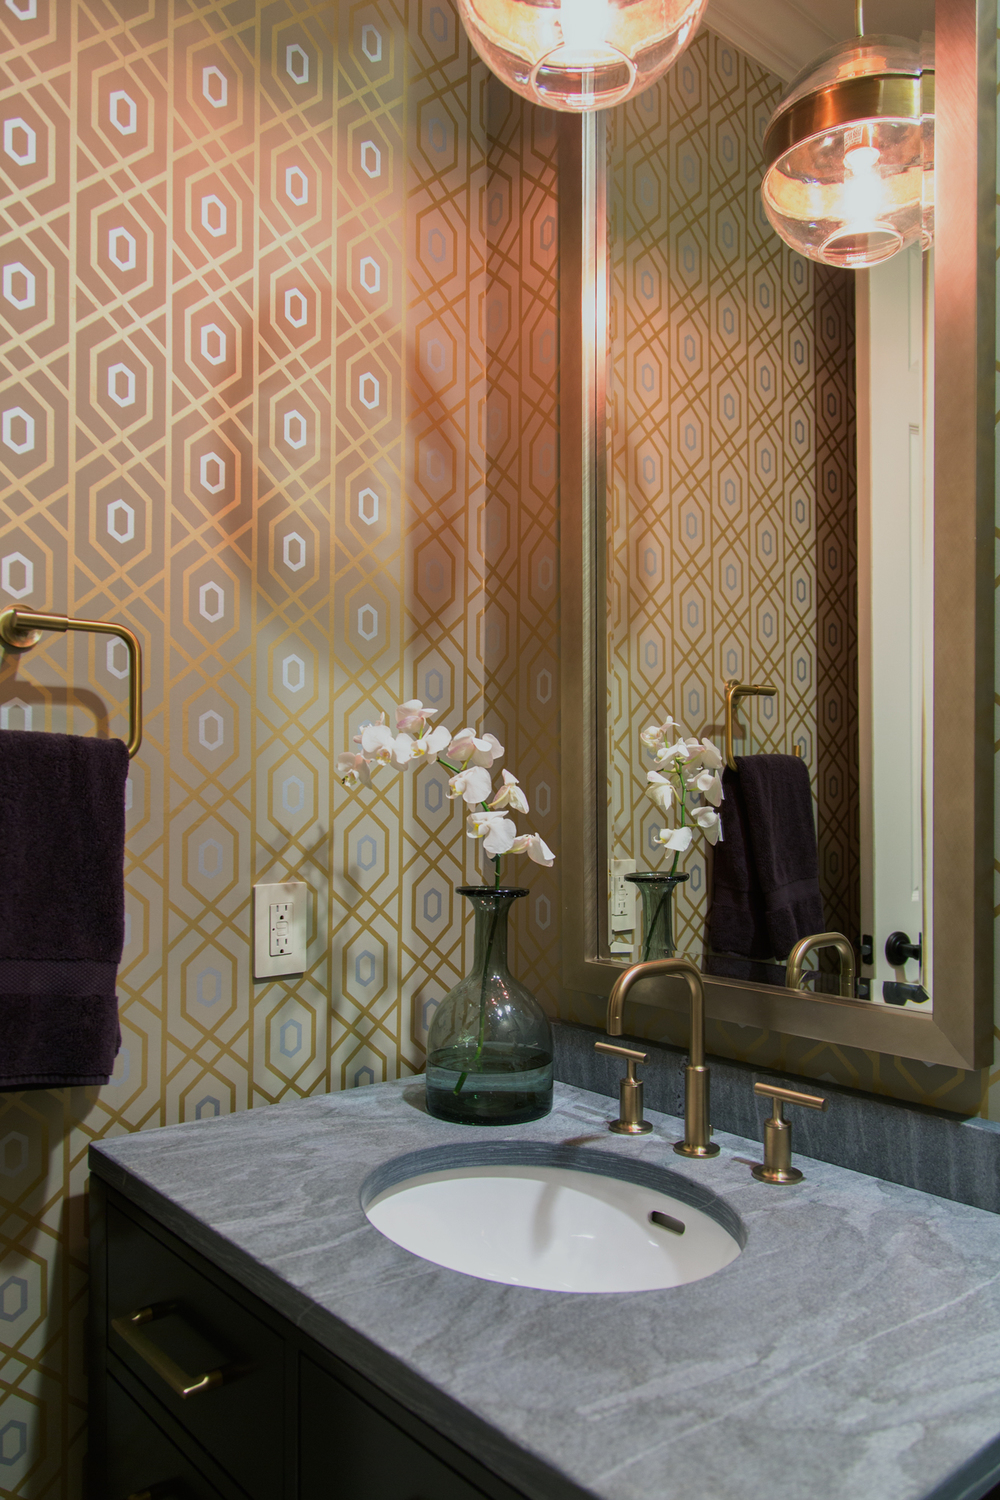 Vintage Powder bath designed by Carla Aston photo by Tori Aston Click HERE to see